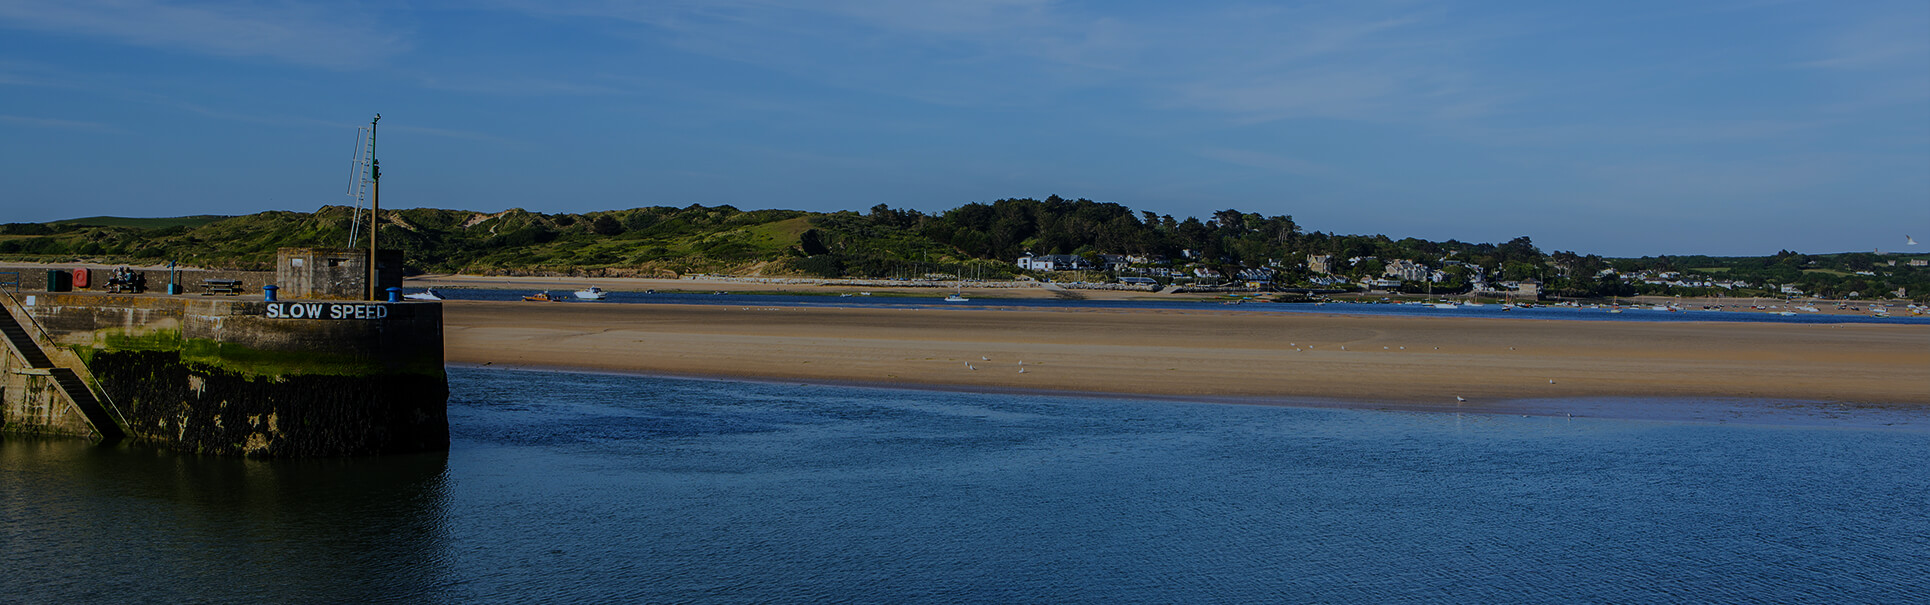 Blog, Padstow Breaks